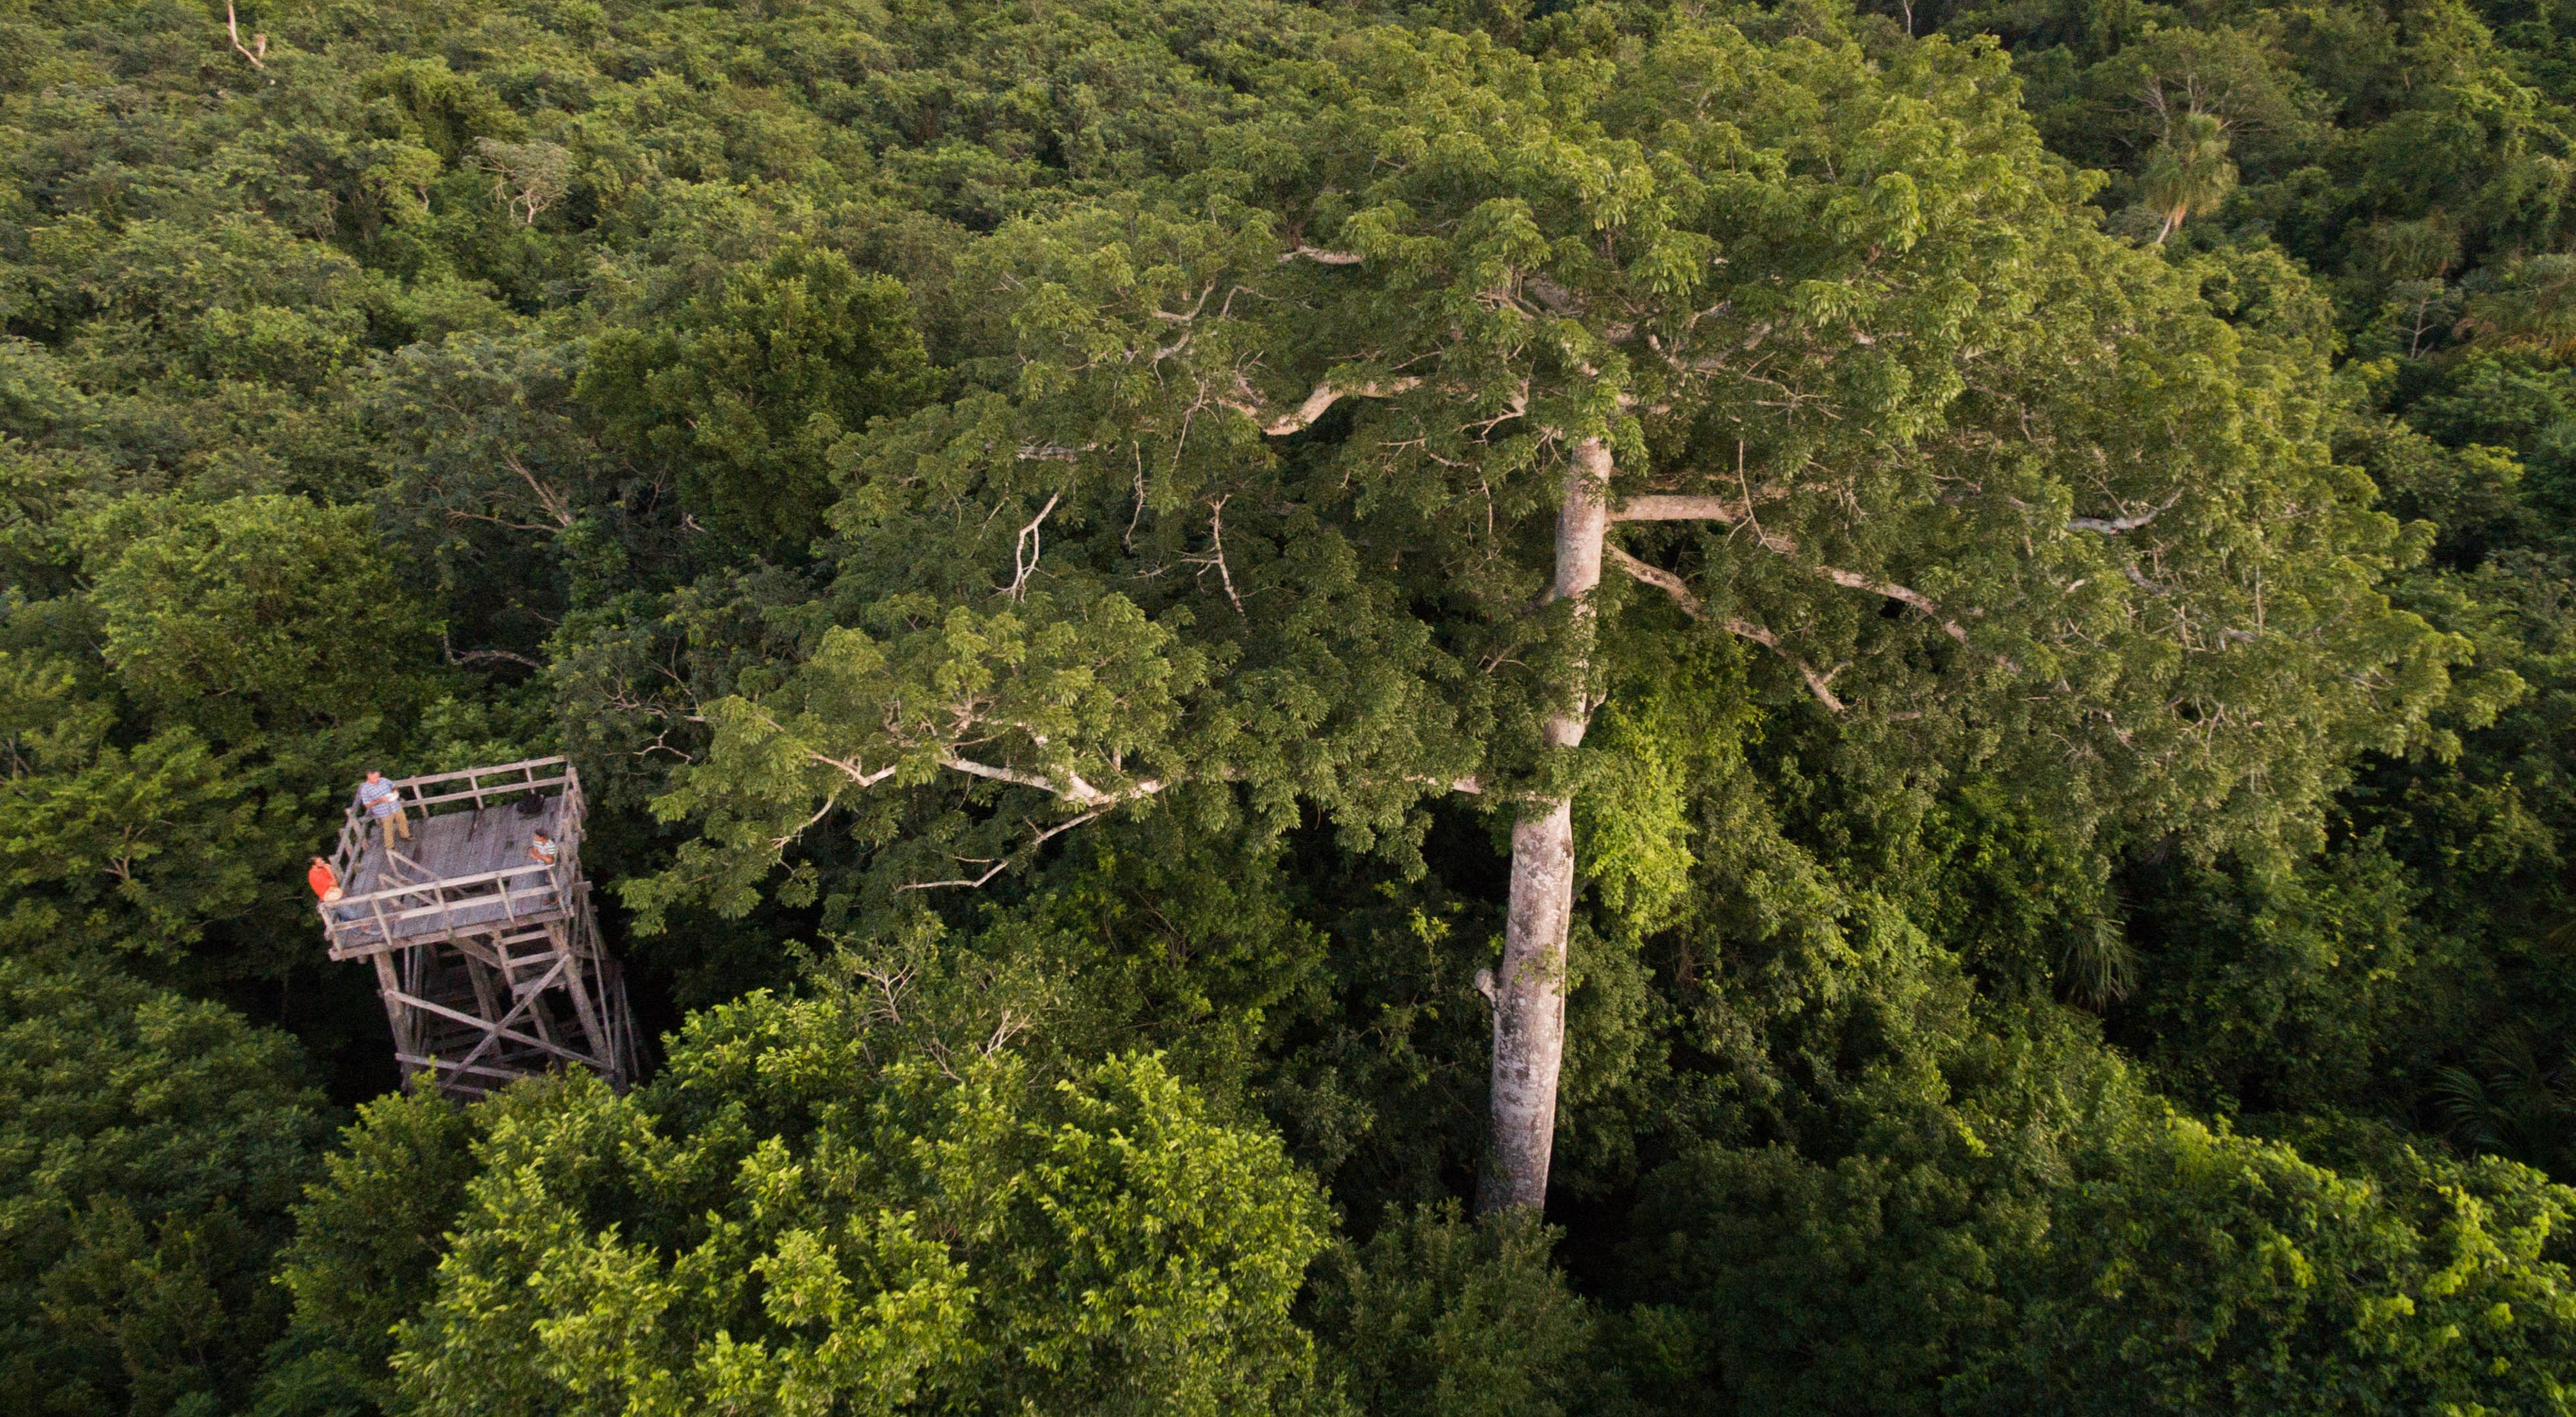 Aerial views of the tropical forest around the logging community of Noh Bec, Quintana Roo, Mexico.